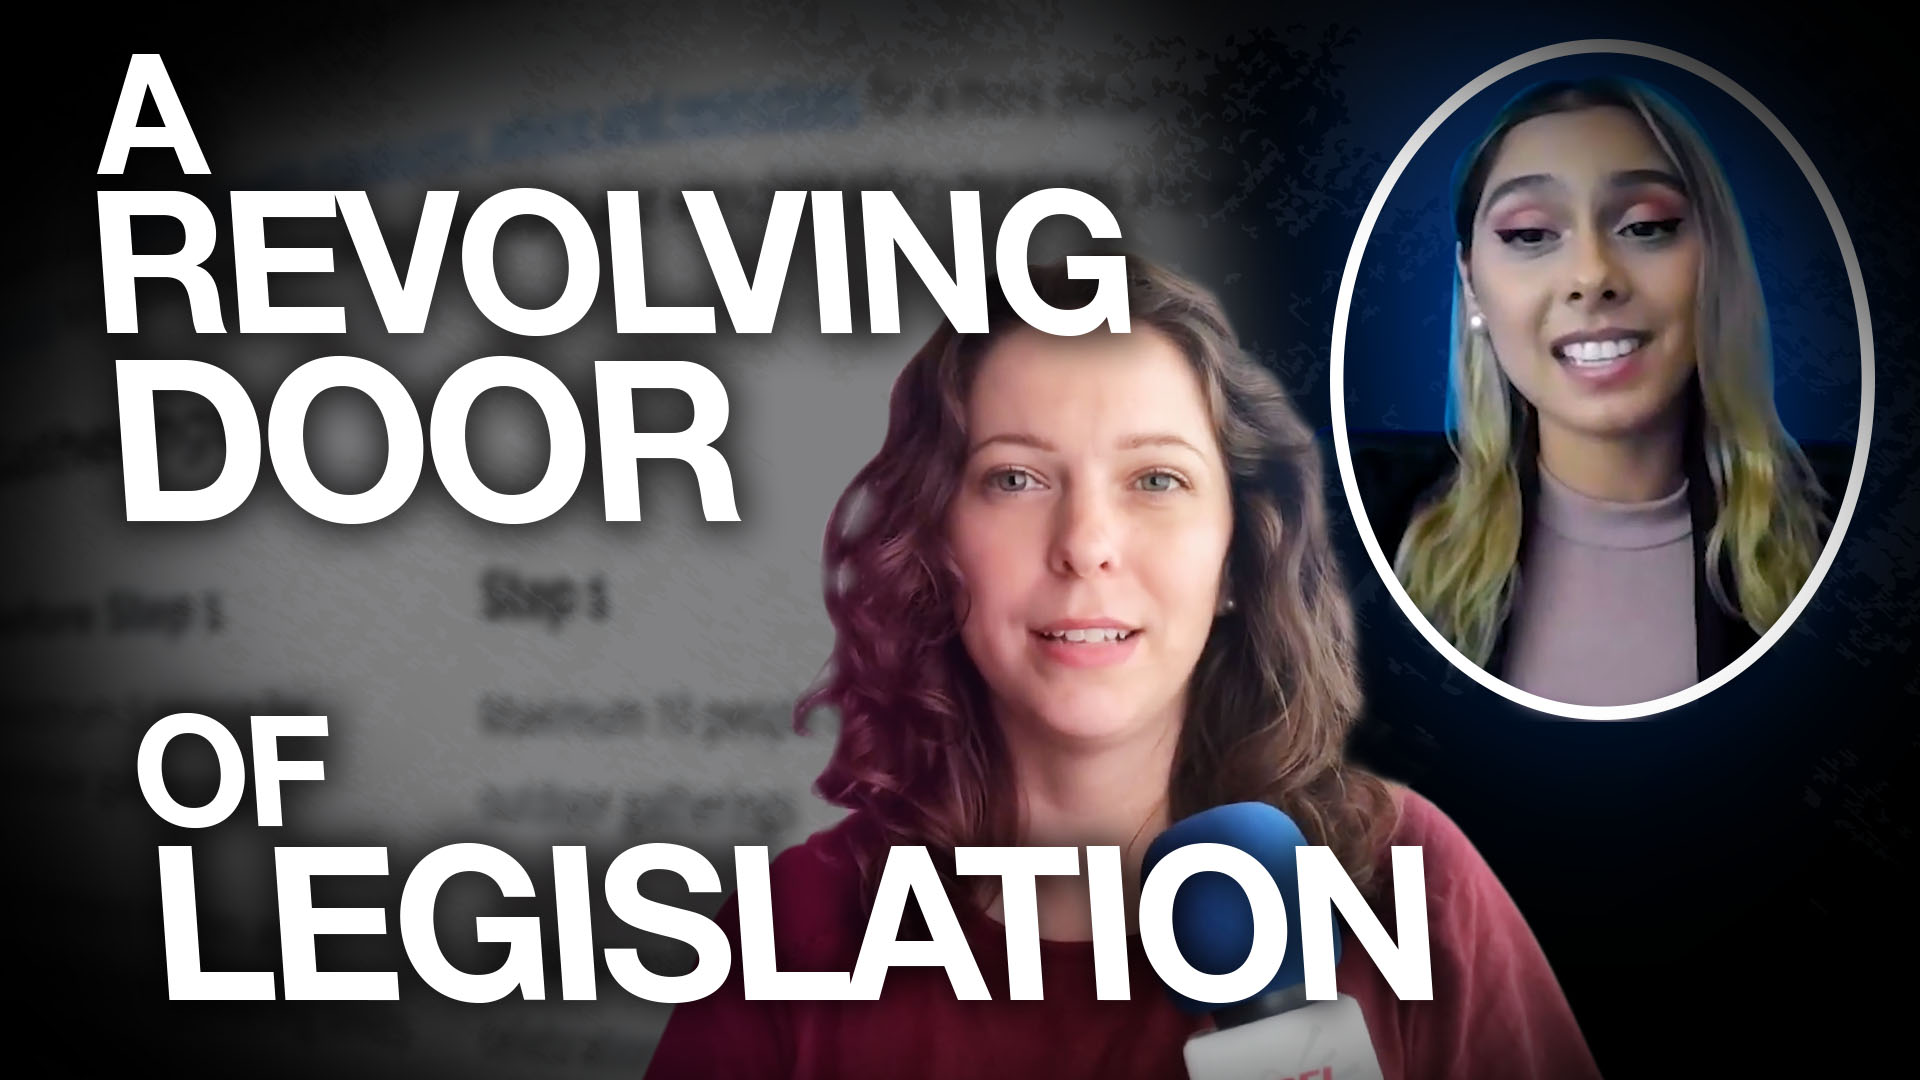 Civil liberties being restricted through unclear laws | Fight The Fines lawyer Amanda Armstrong